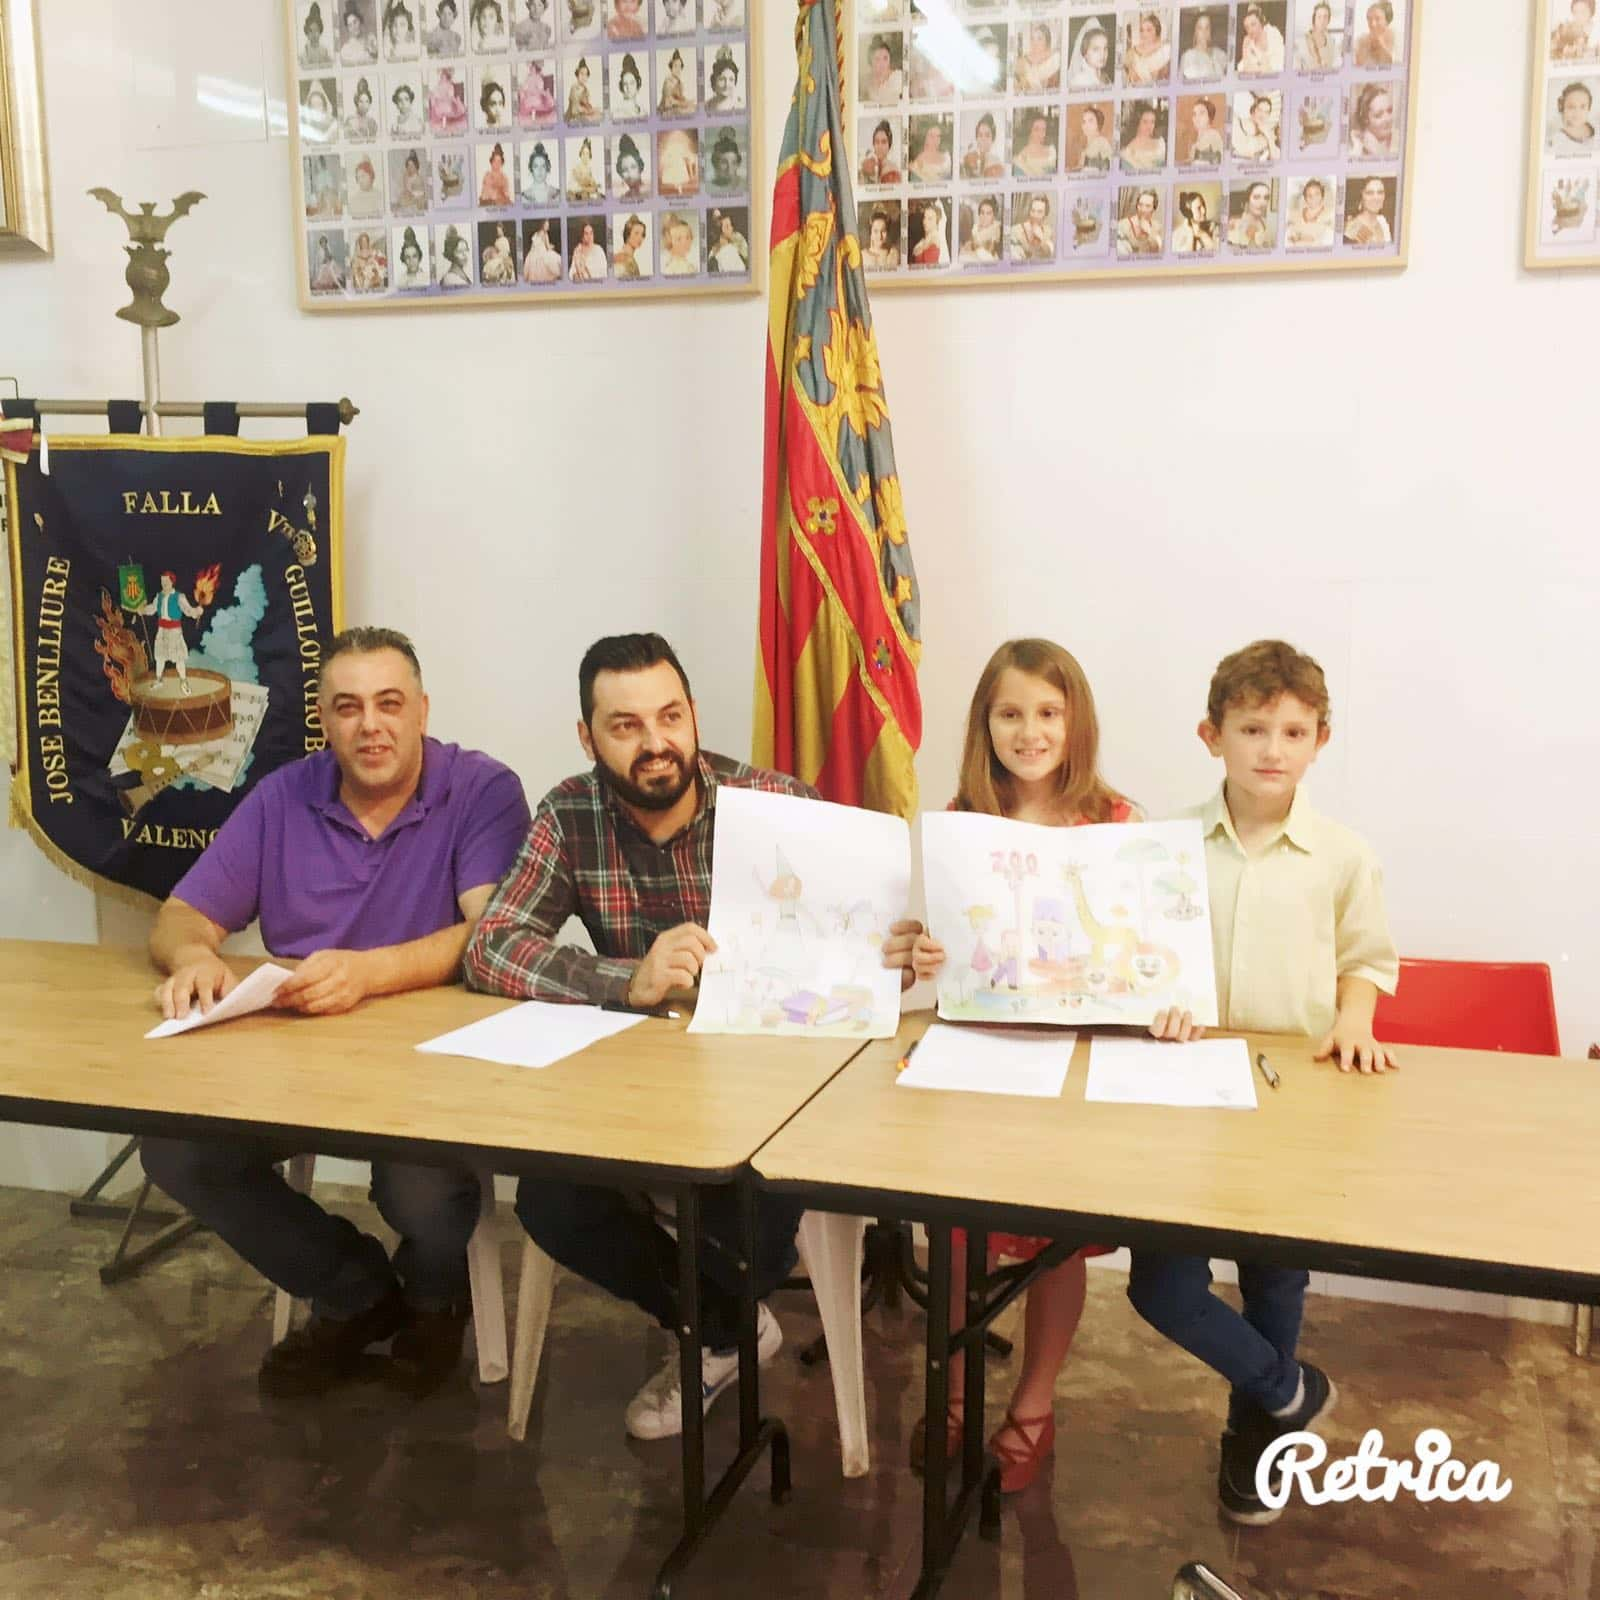 The Falla of José Benlliure Vte - Guillot 'Uncle ball' signs with the Falla artist Francisco Fuentes 1